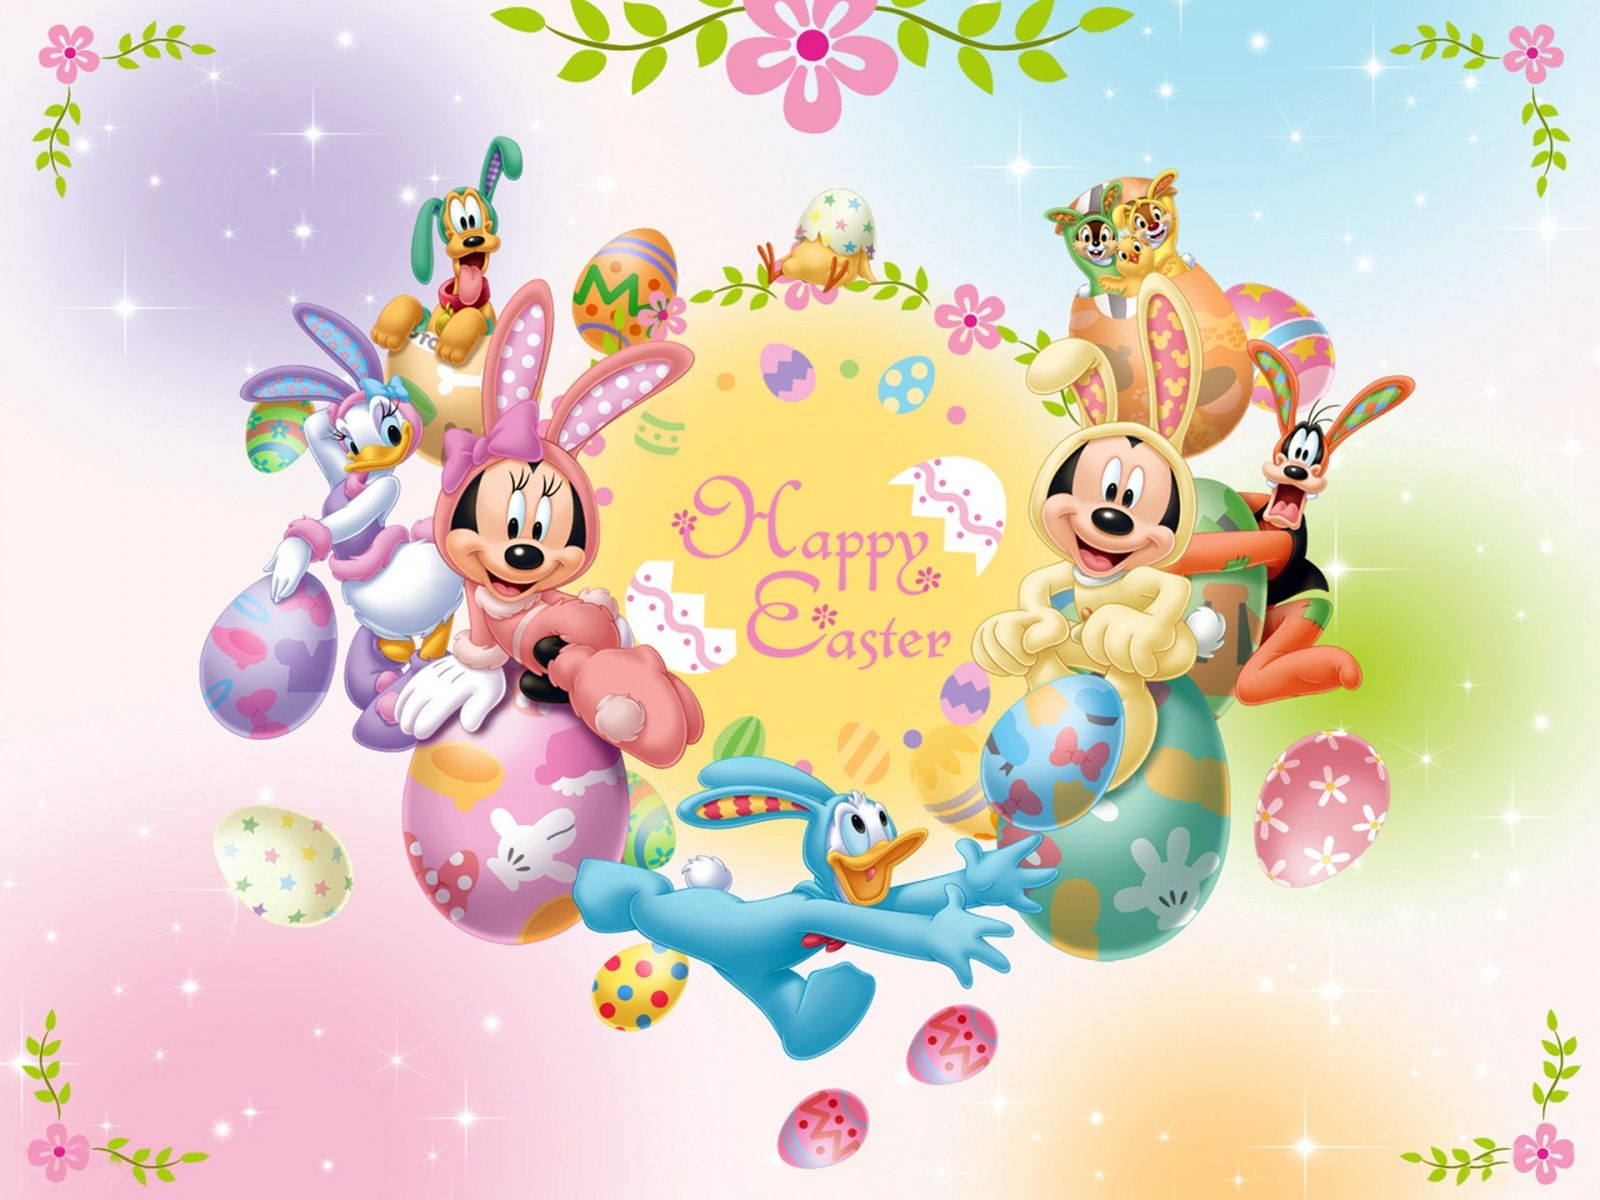 Image detail for mickey_mouse_and_friends_easter Easter